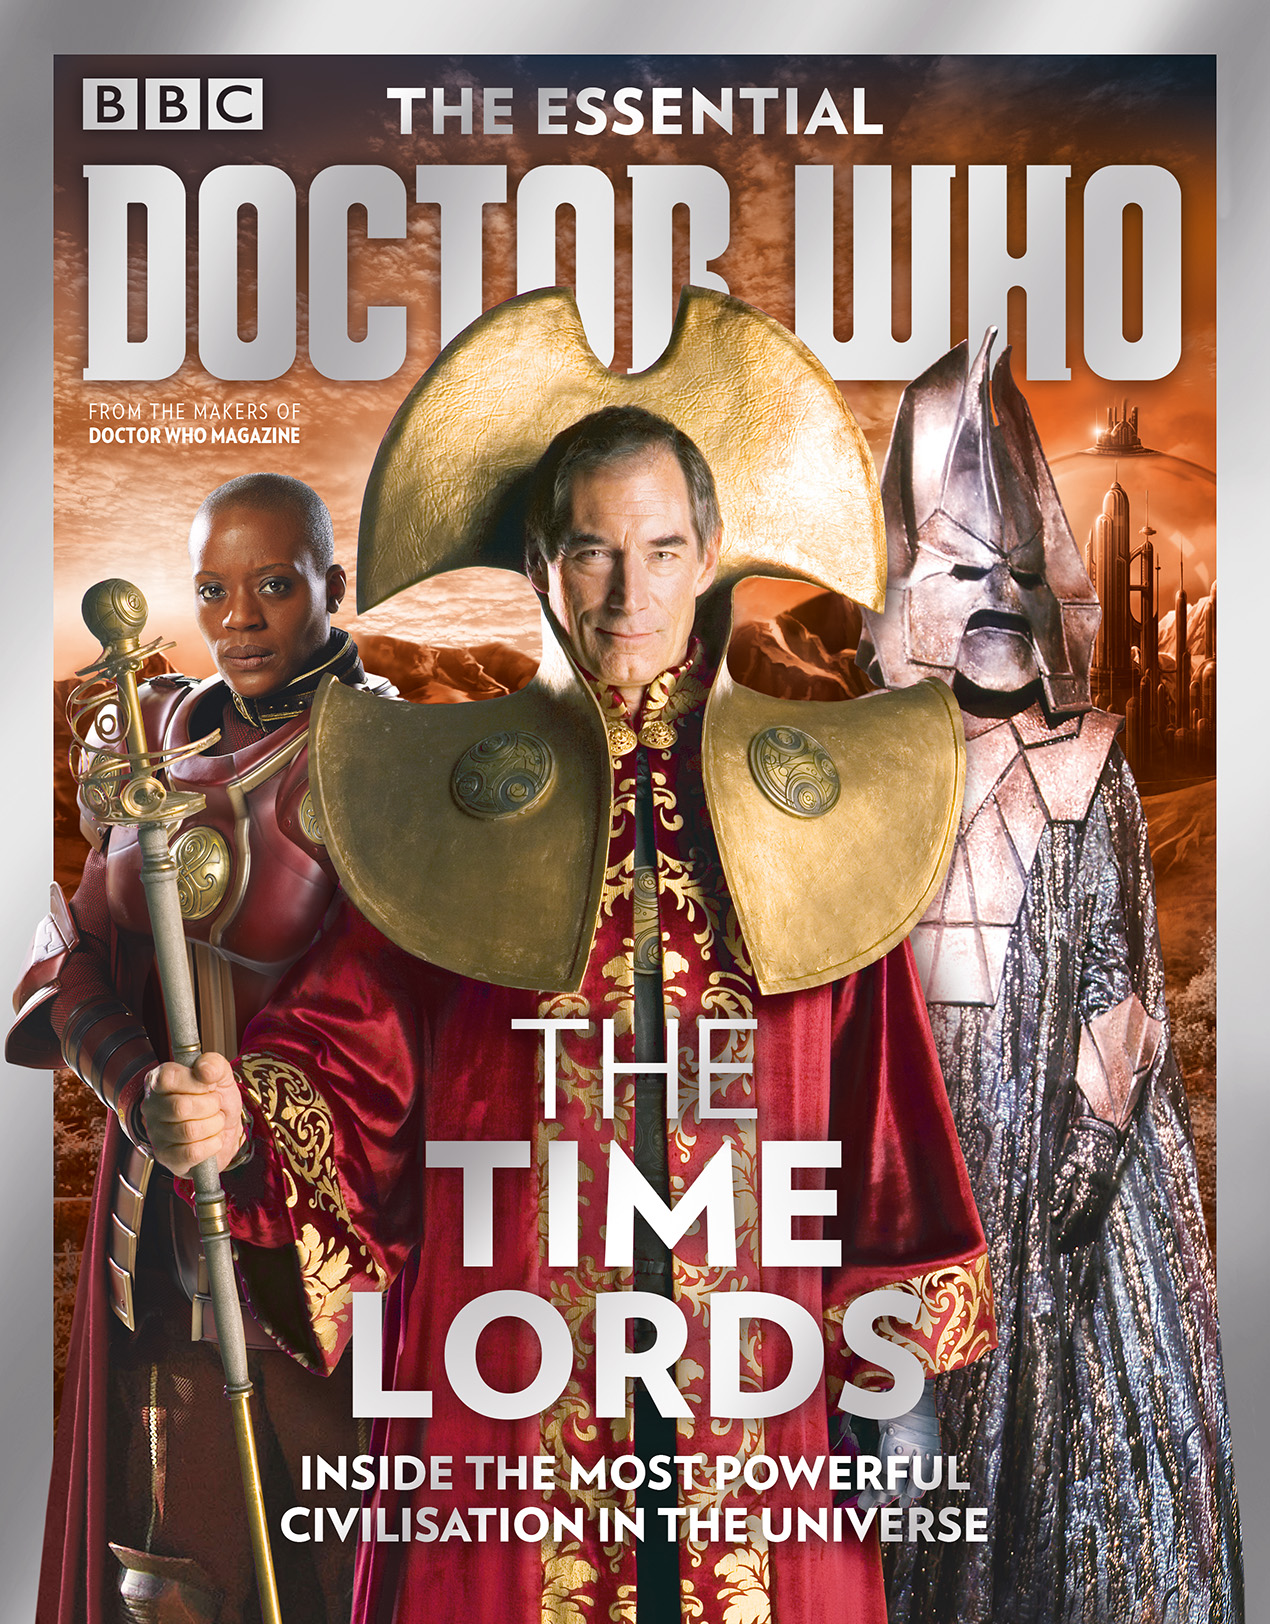 THE ESSENTIAL DOCTOR WHO #7: TIME LORDS (Credit: Panini)